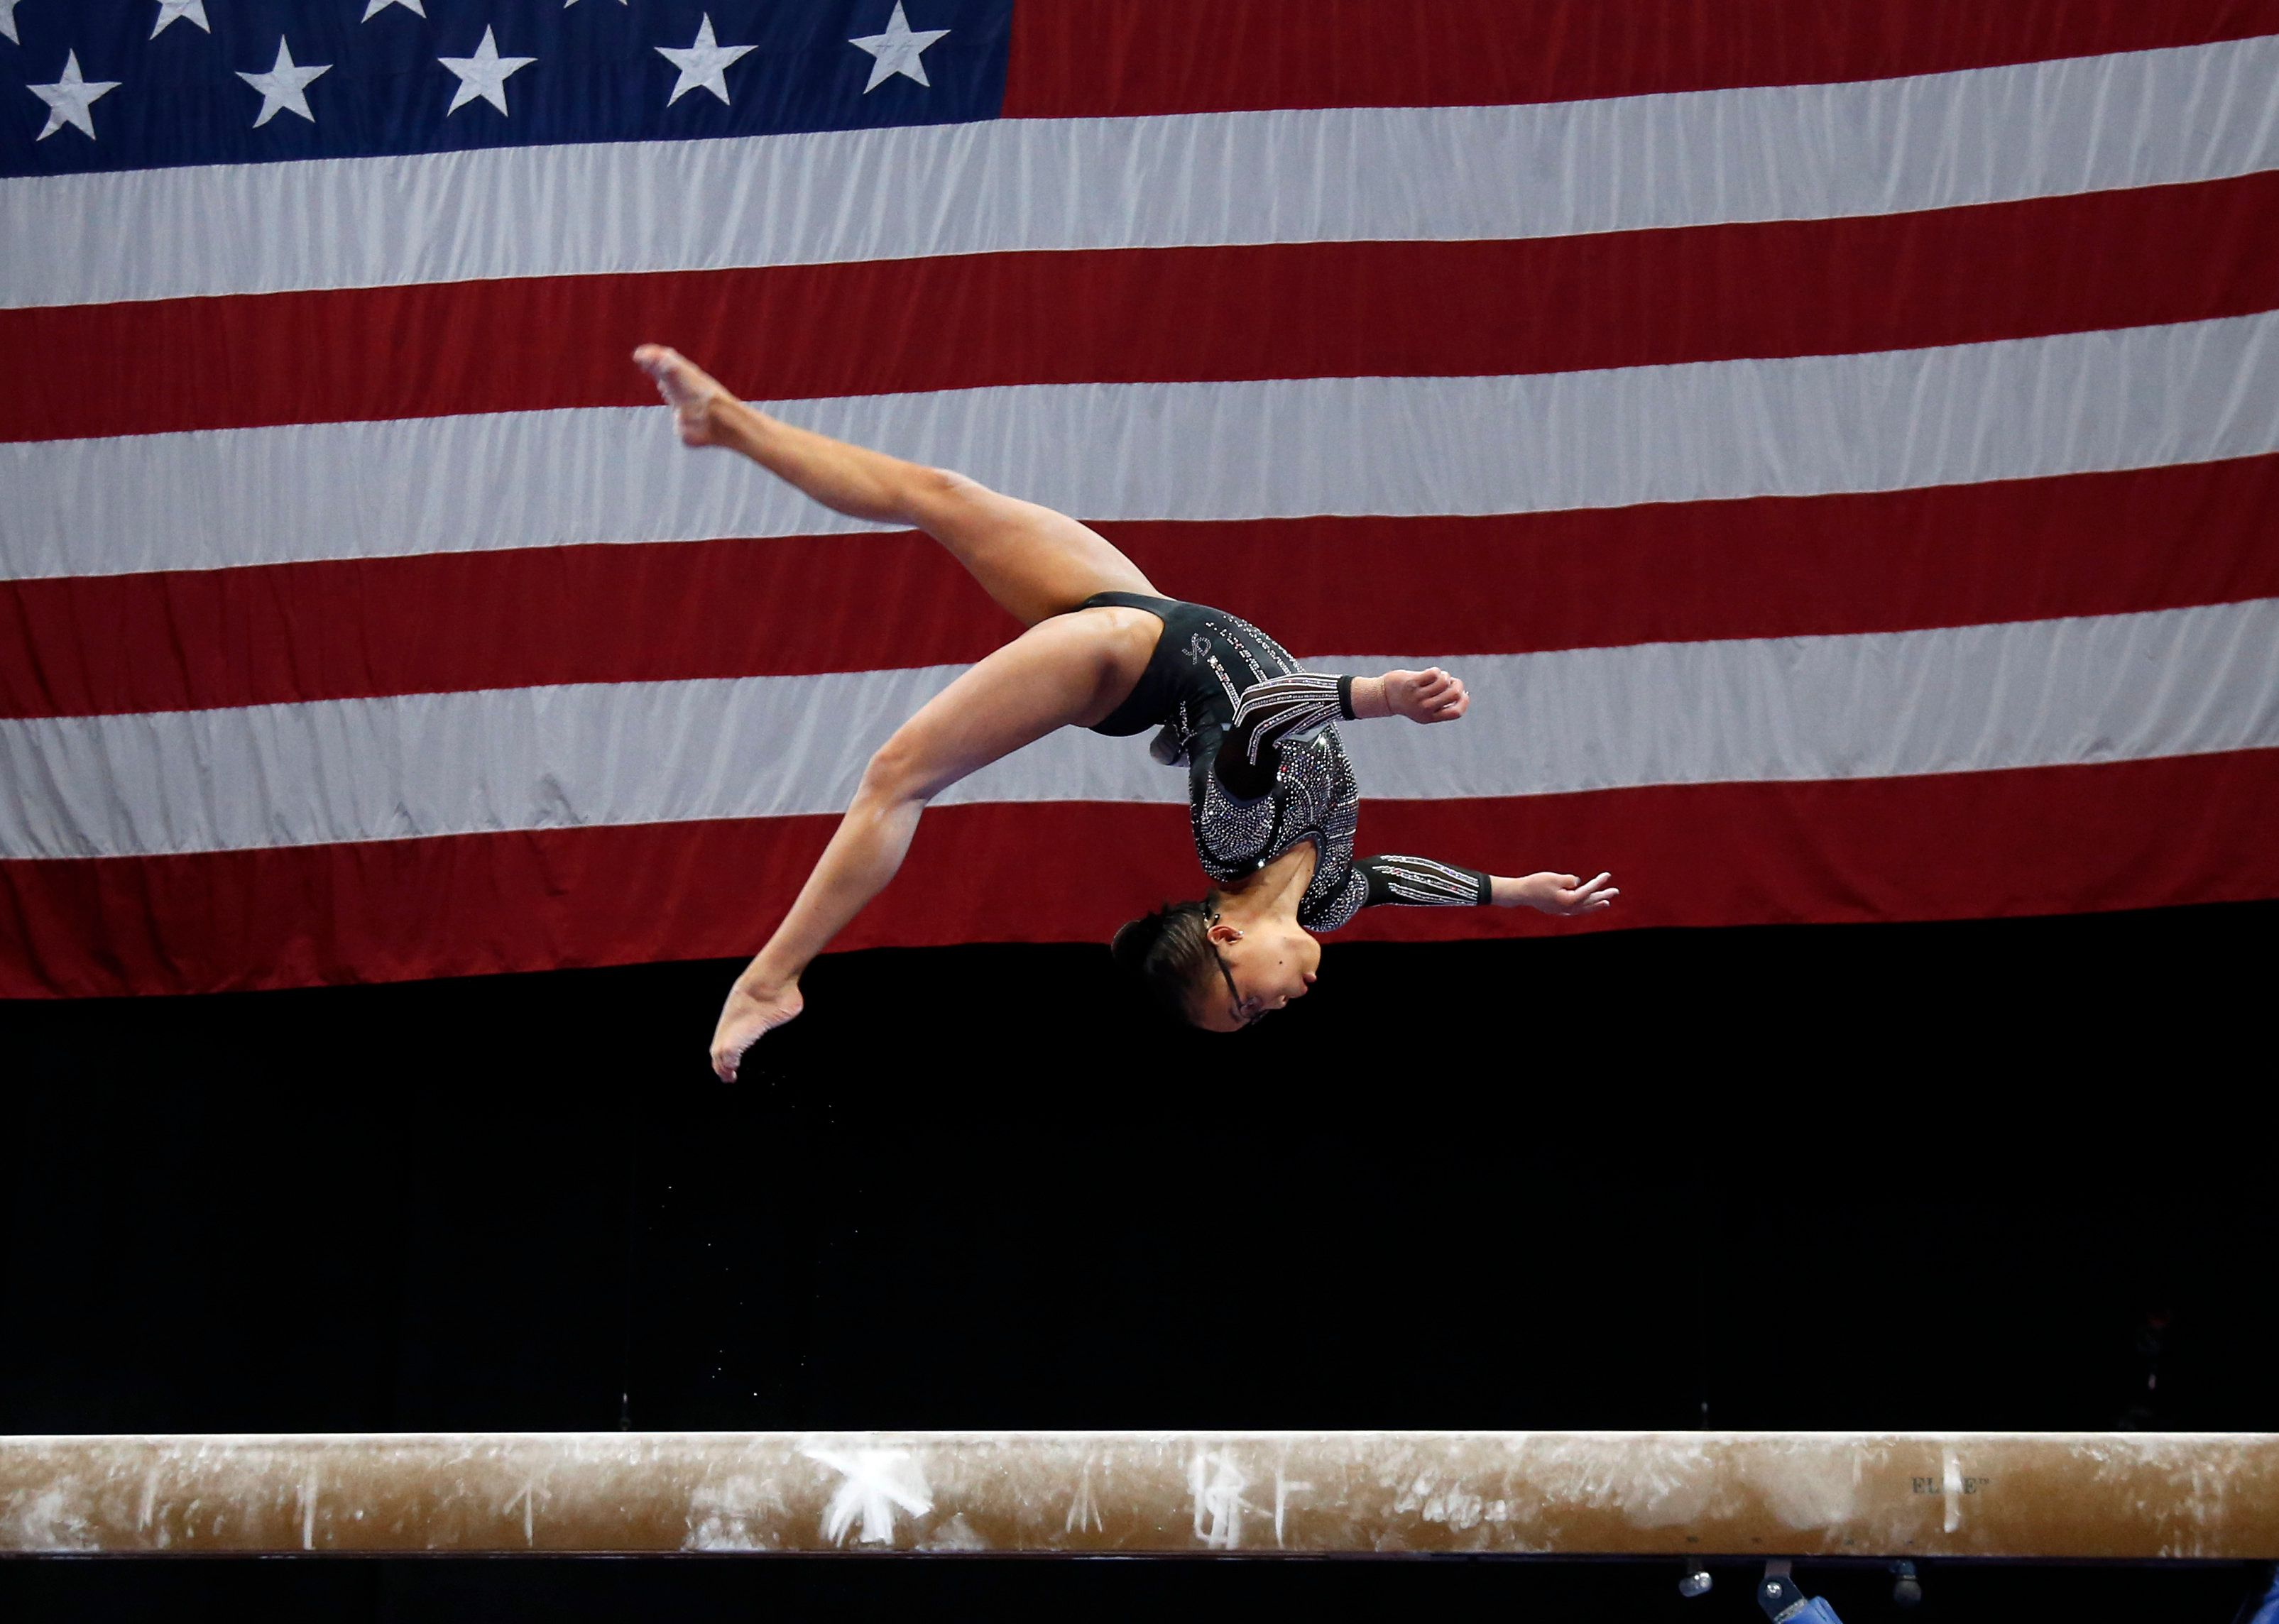 Morgan Hurd competes on the balance beam at the U.S. Gymnastics Championships, Sunday, Aug. 19, 2018, in Boston. (AP Photo/Elise Amendola)